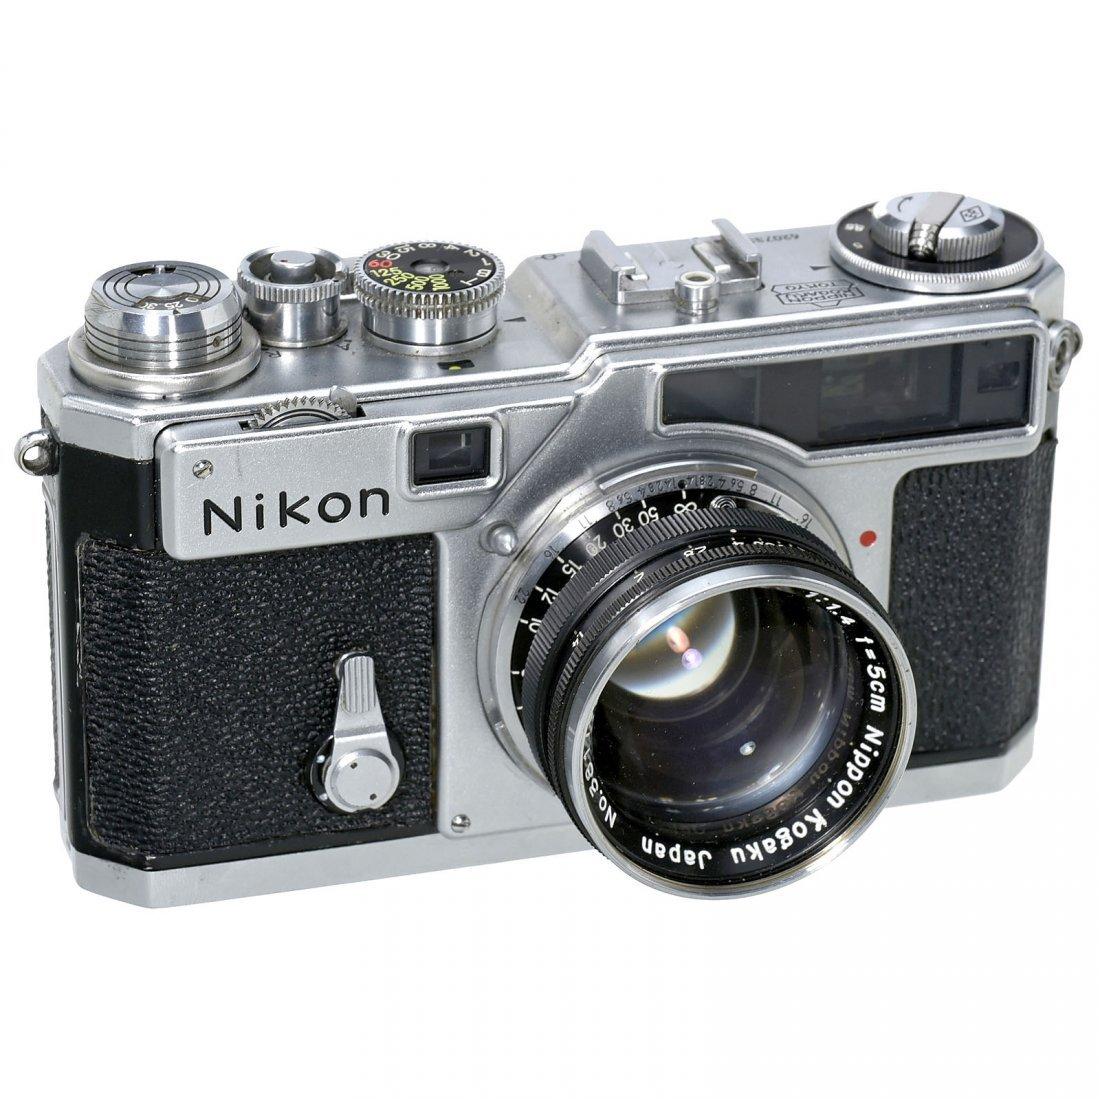 Nikon SP (Chrome) with Nikkor 1,4/5 cm, c. 1957